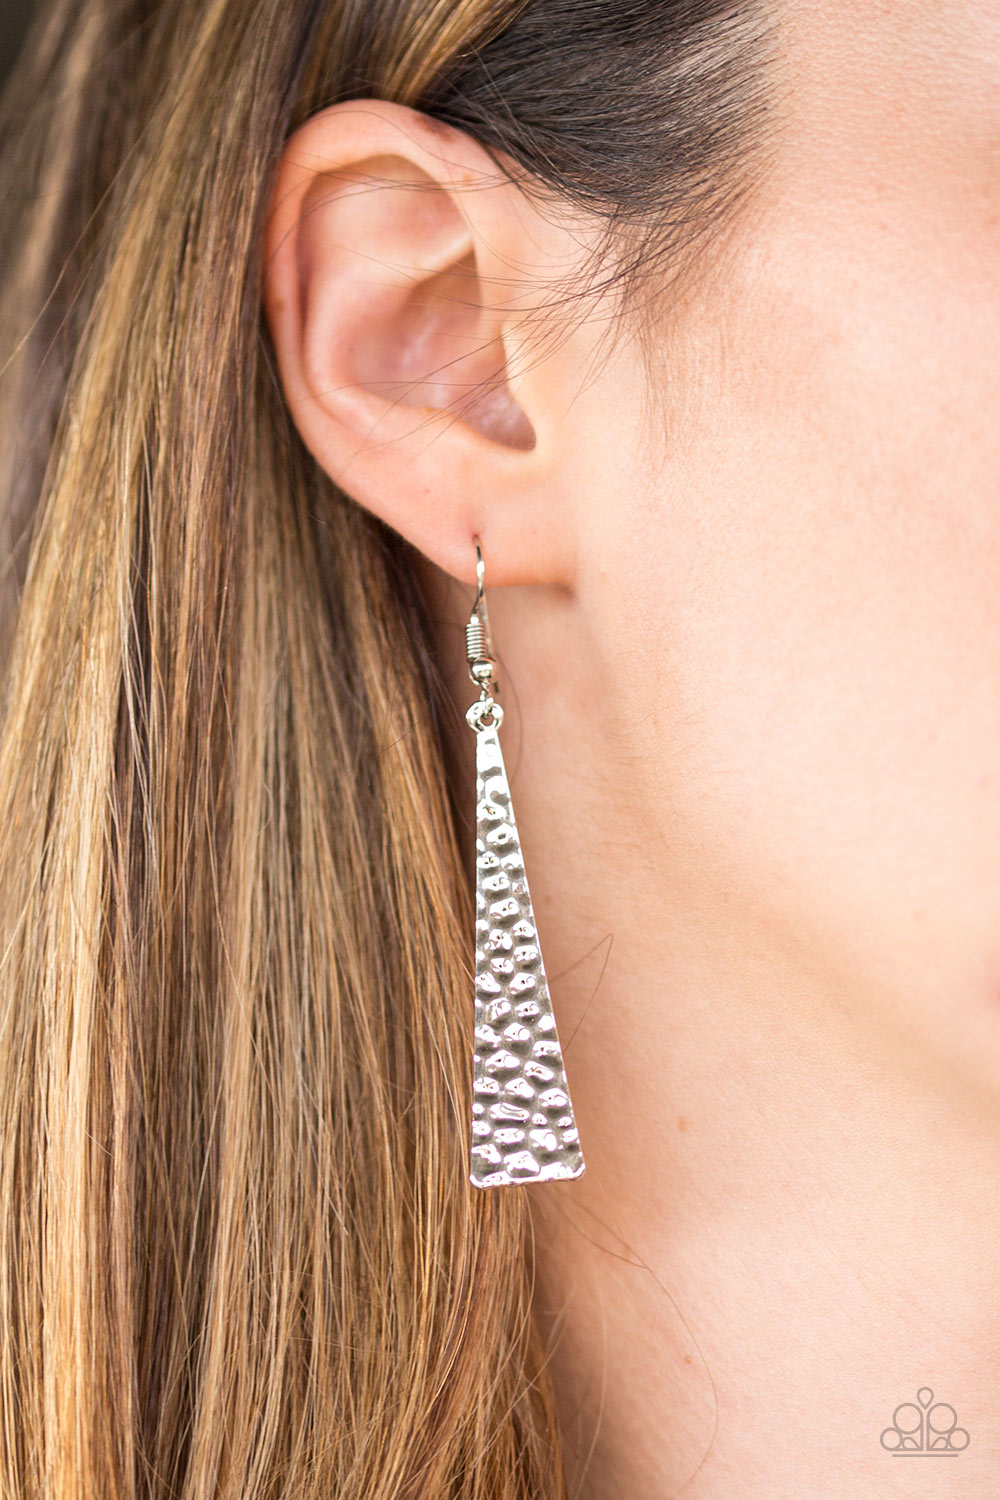 Hammered in endless shimmer, a triangular silver plate swings from the ear in a fierce fashion. Earring attaches to a standard fishhook fitting.  Sold as one pair of earrings.  Always nickel and lead free.